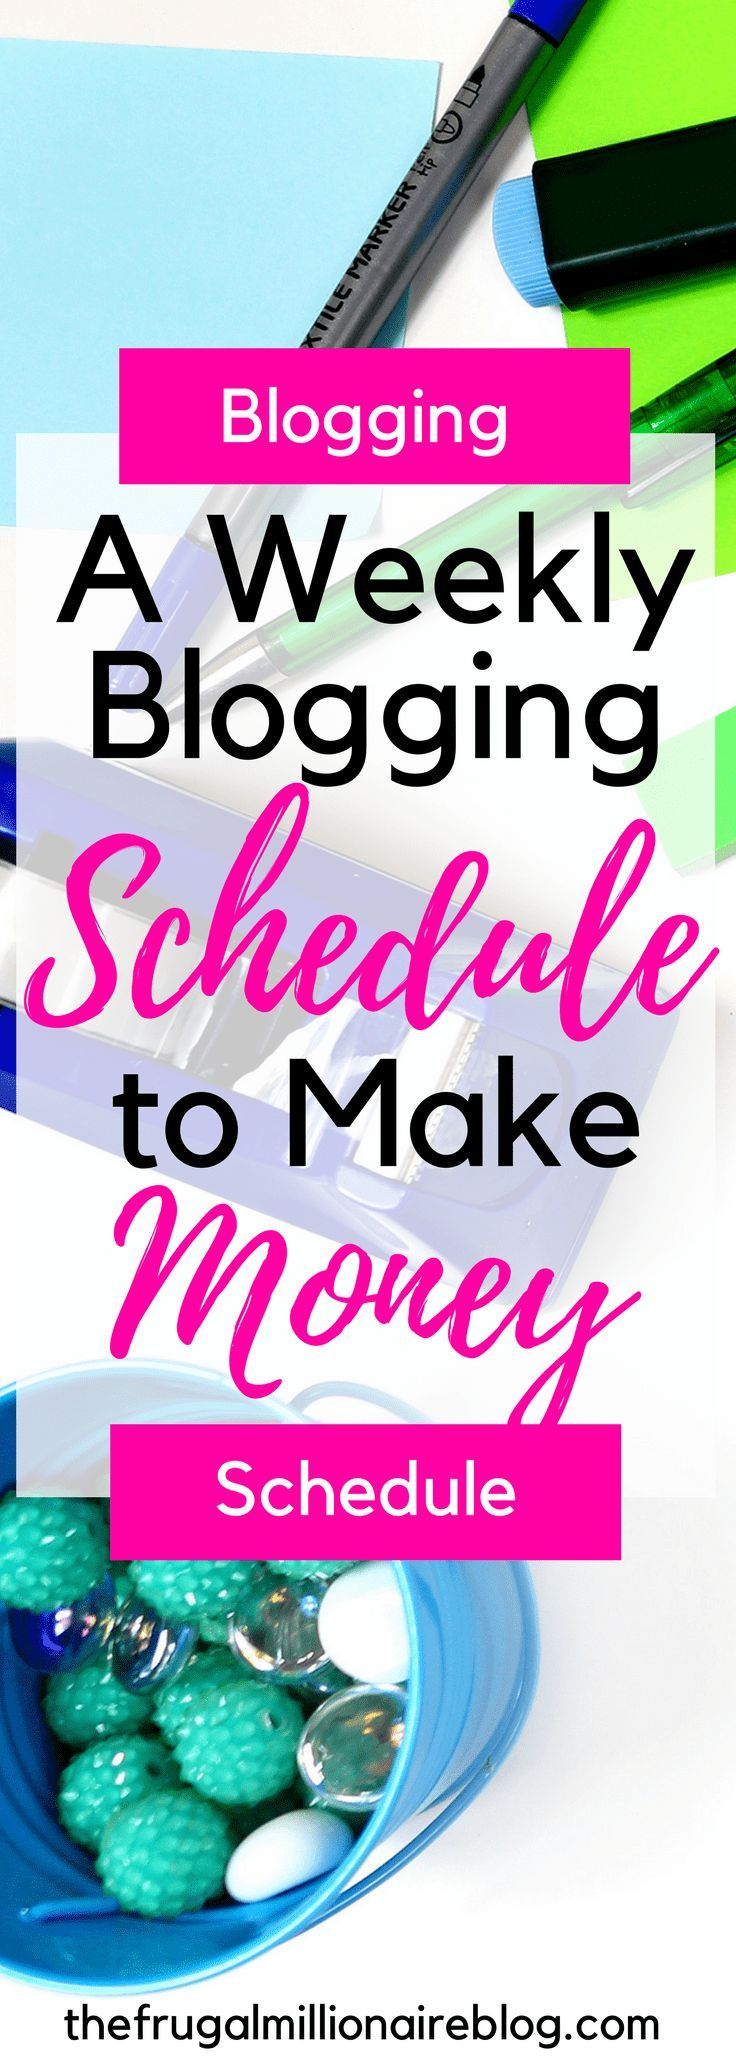 If you want to make money blogging, you have to check out this weekly schedule that will show you exactly how to start monetizing in very little time!